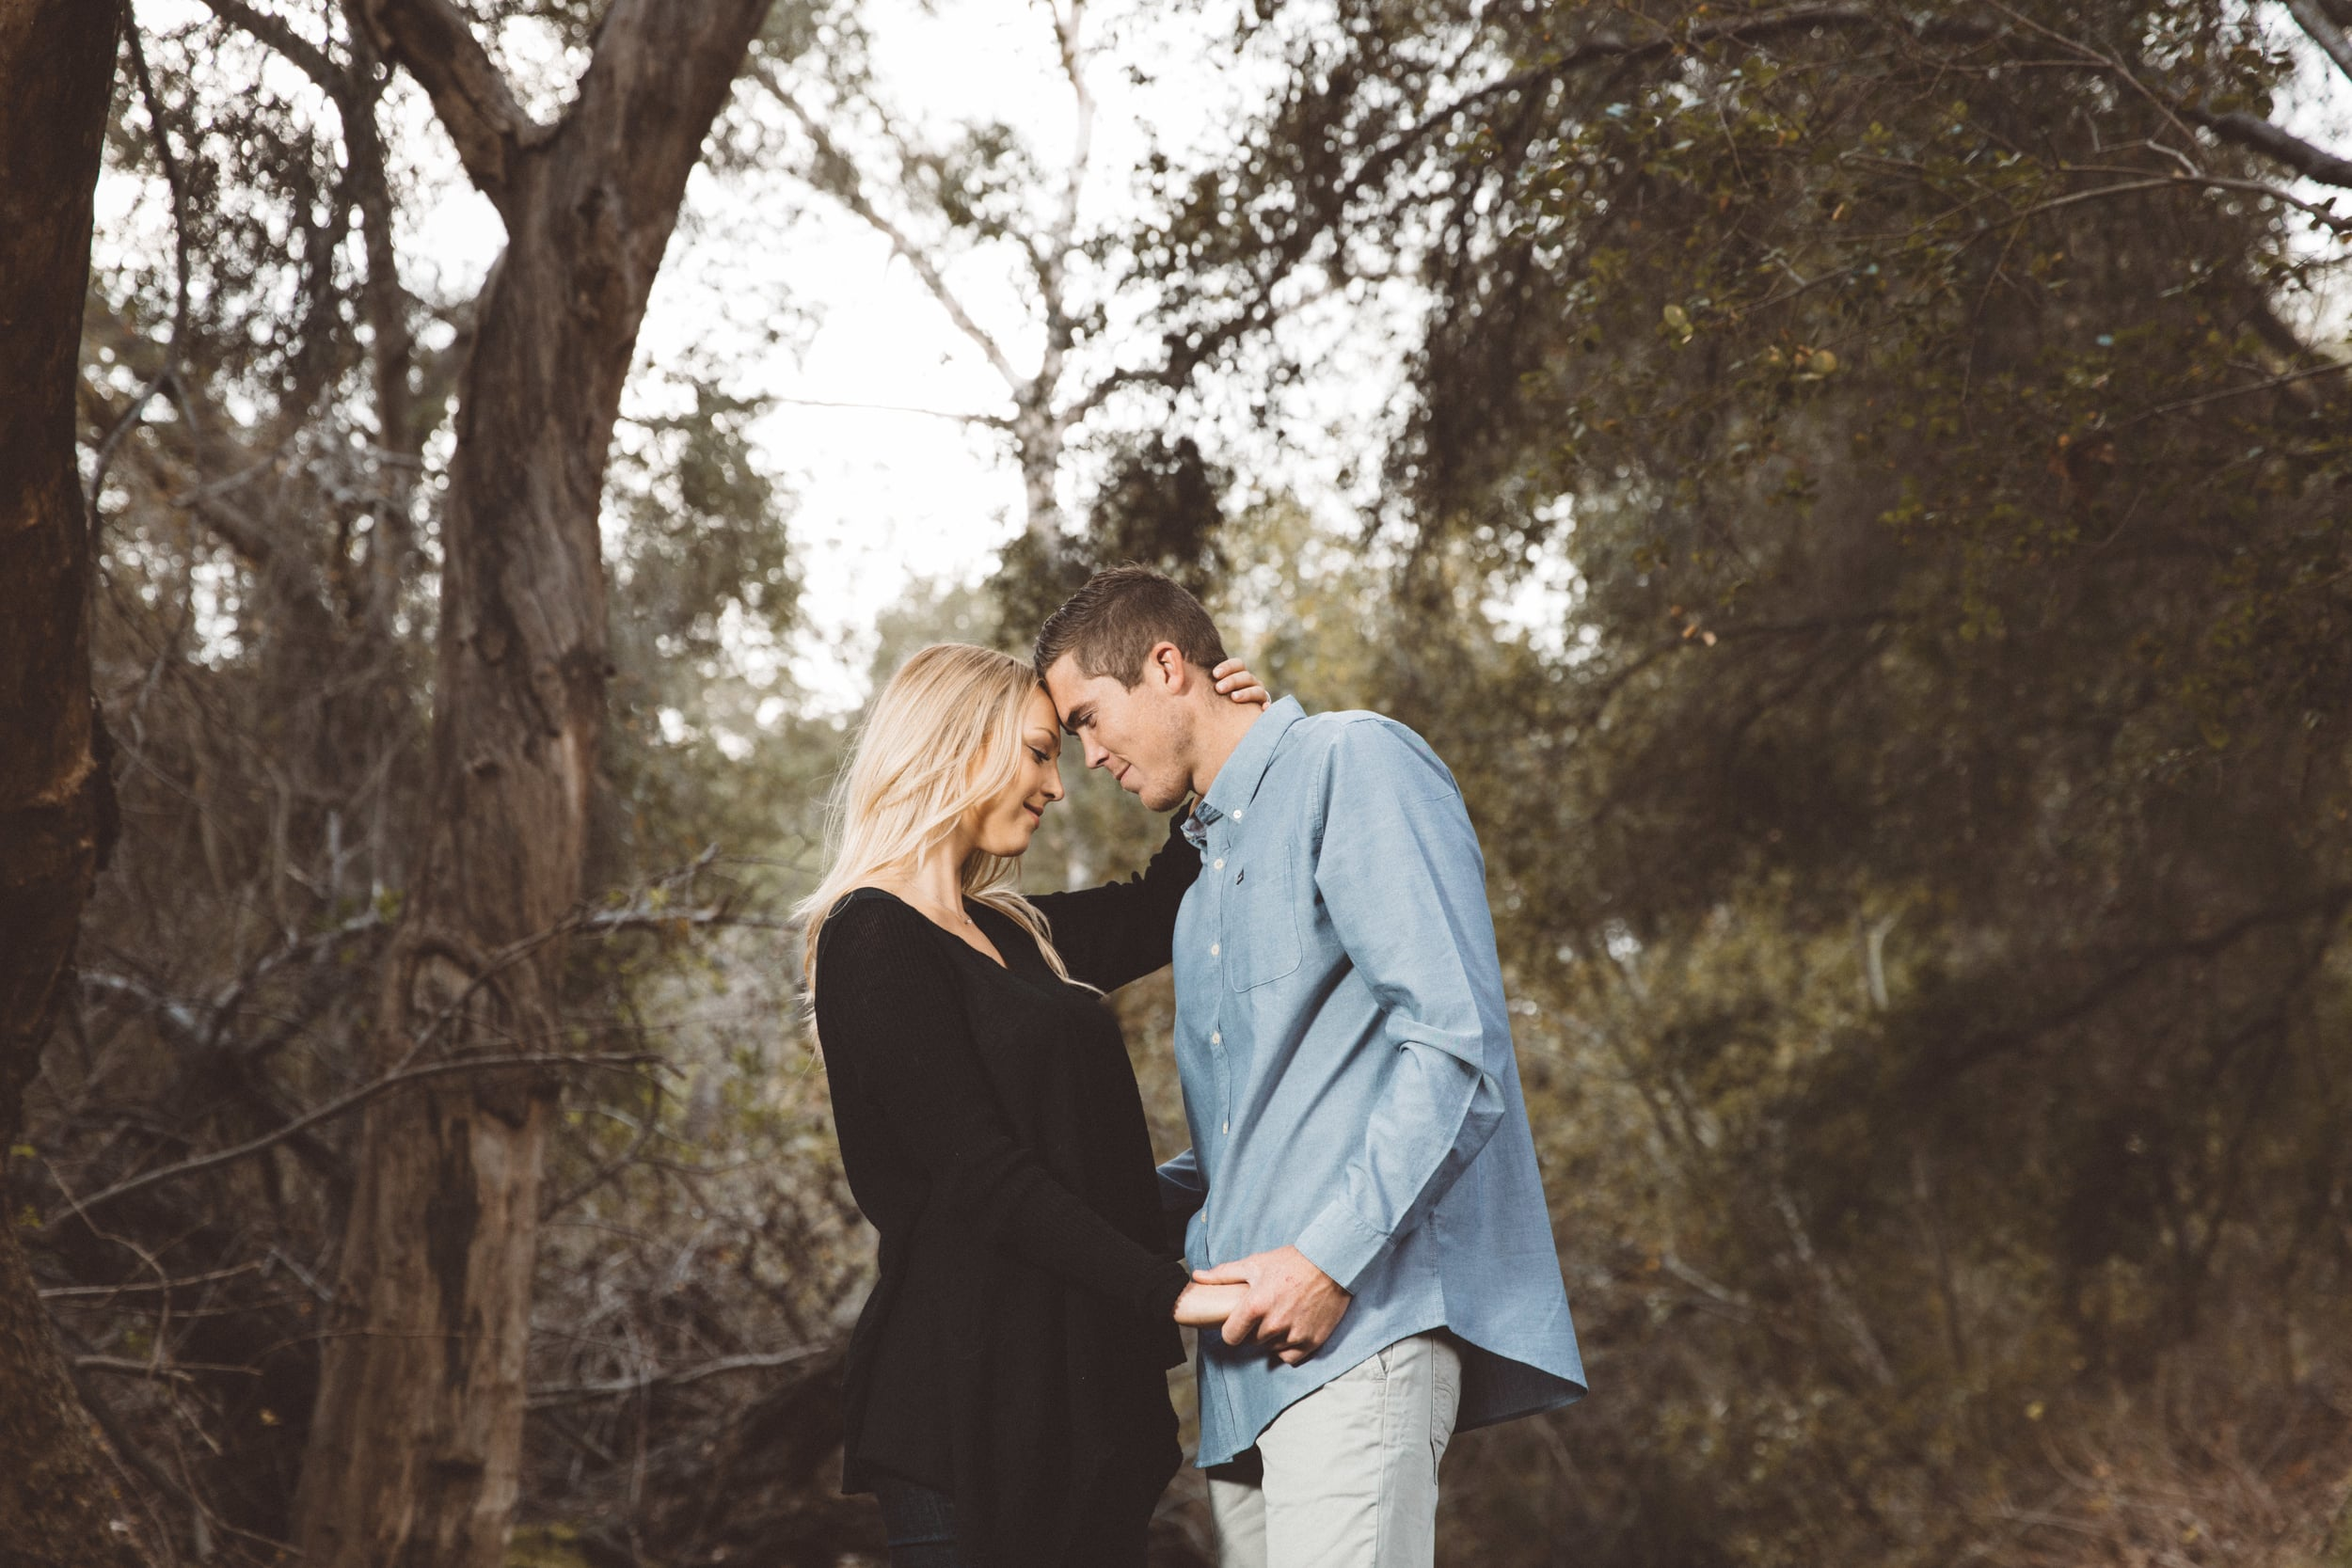 engagement_sandiego_california_love_aliciachandler_kaeli_shane-1.jpg